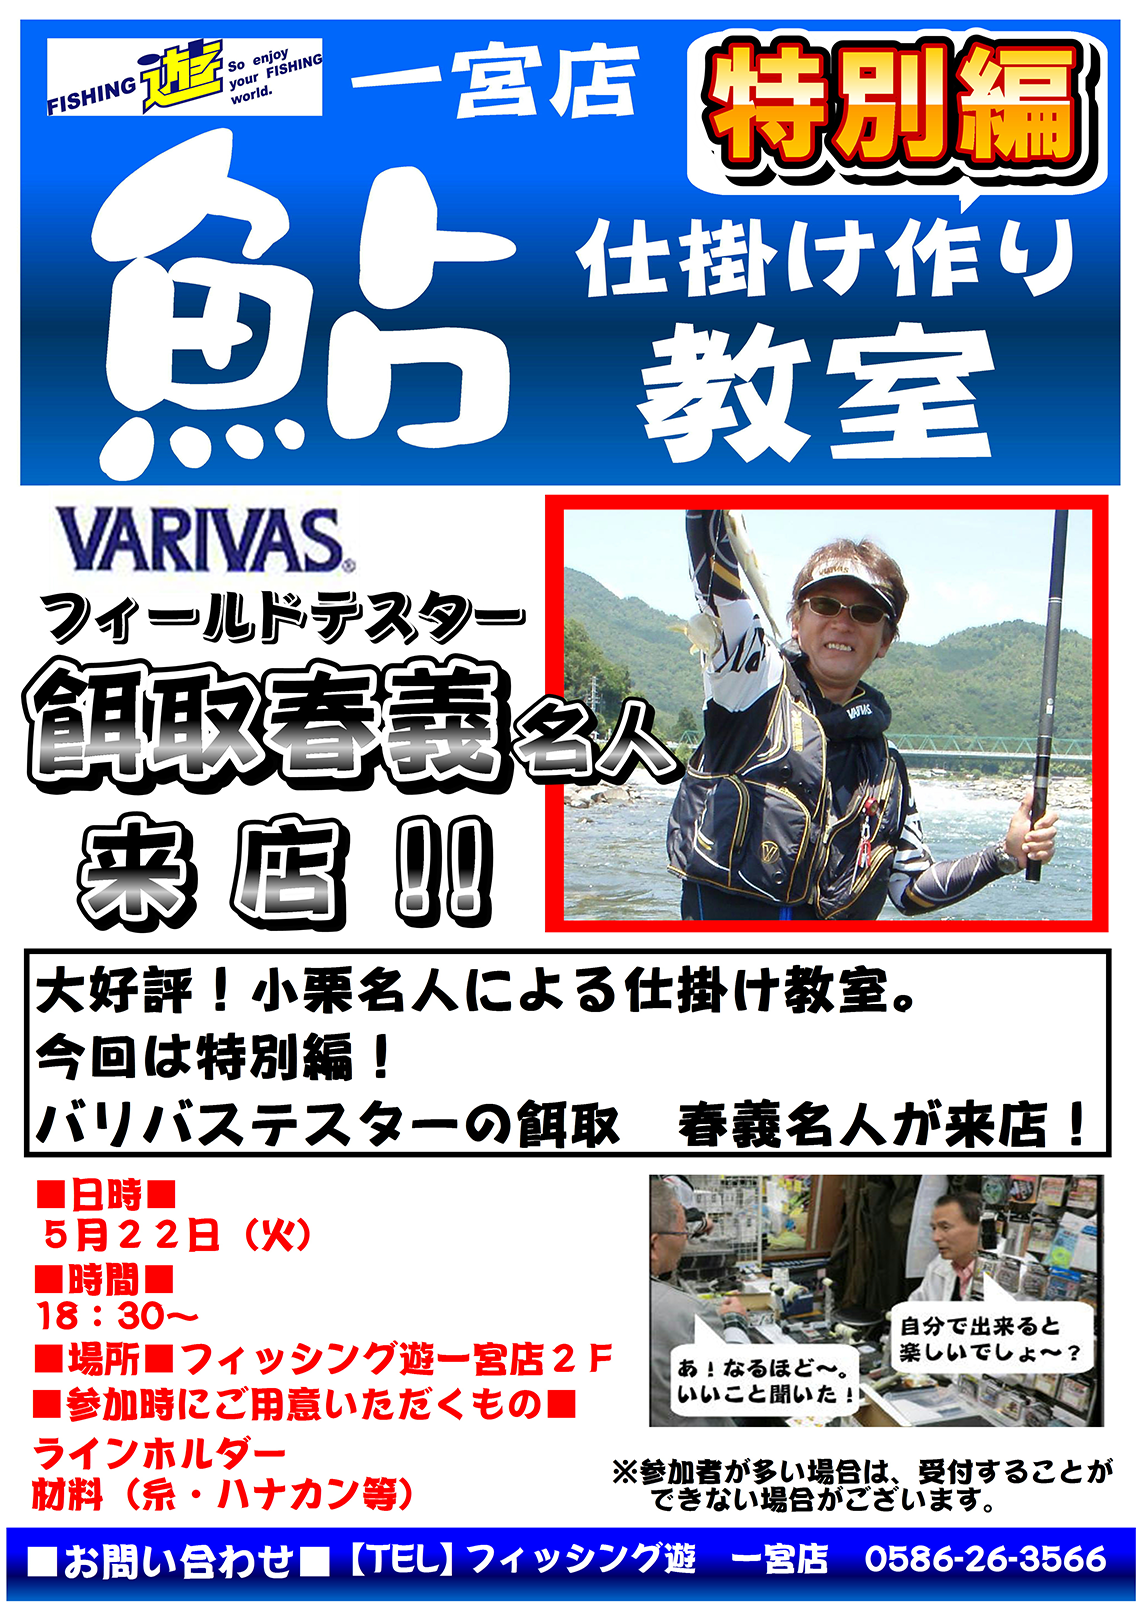 <a href=&quot;http://fishing-you.com/event/180522ichinomiya&quot;>一宮店 鮎仕掛け作り教室(特別編)</a>